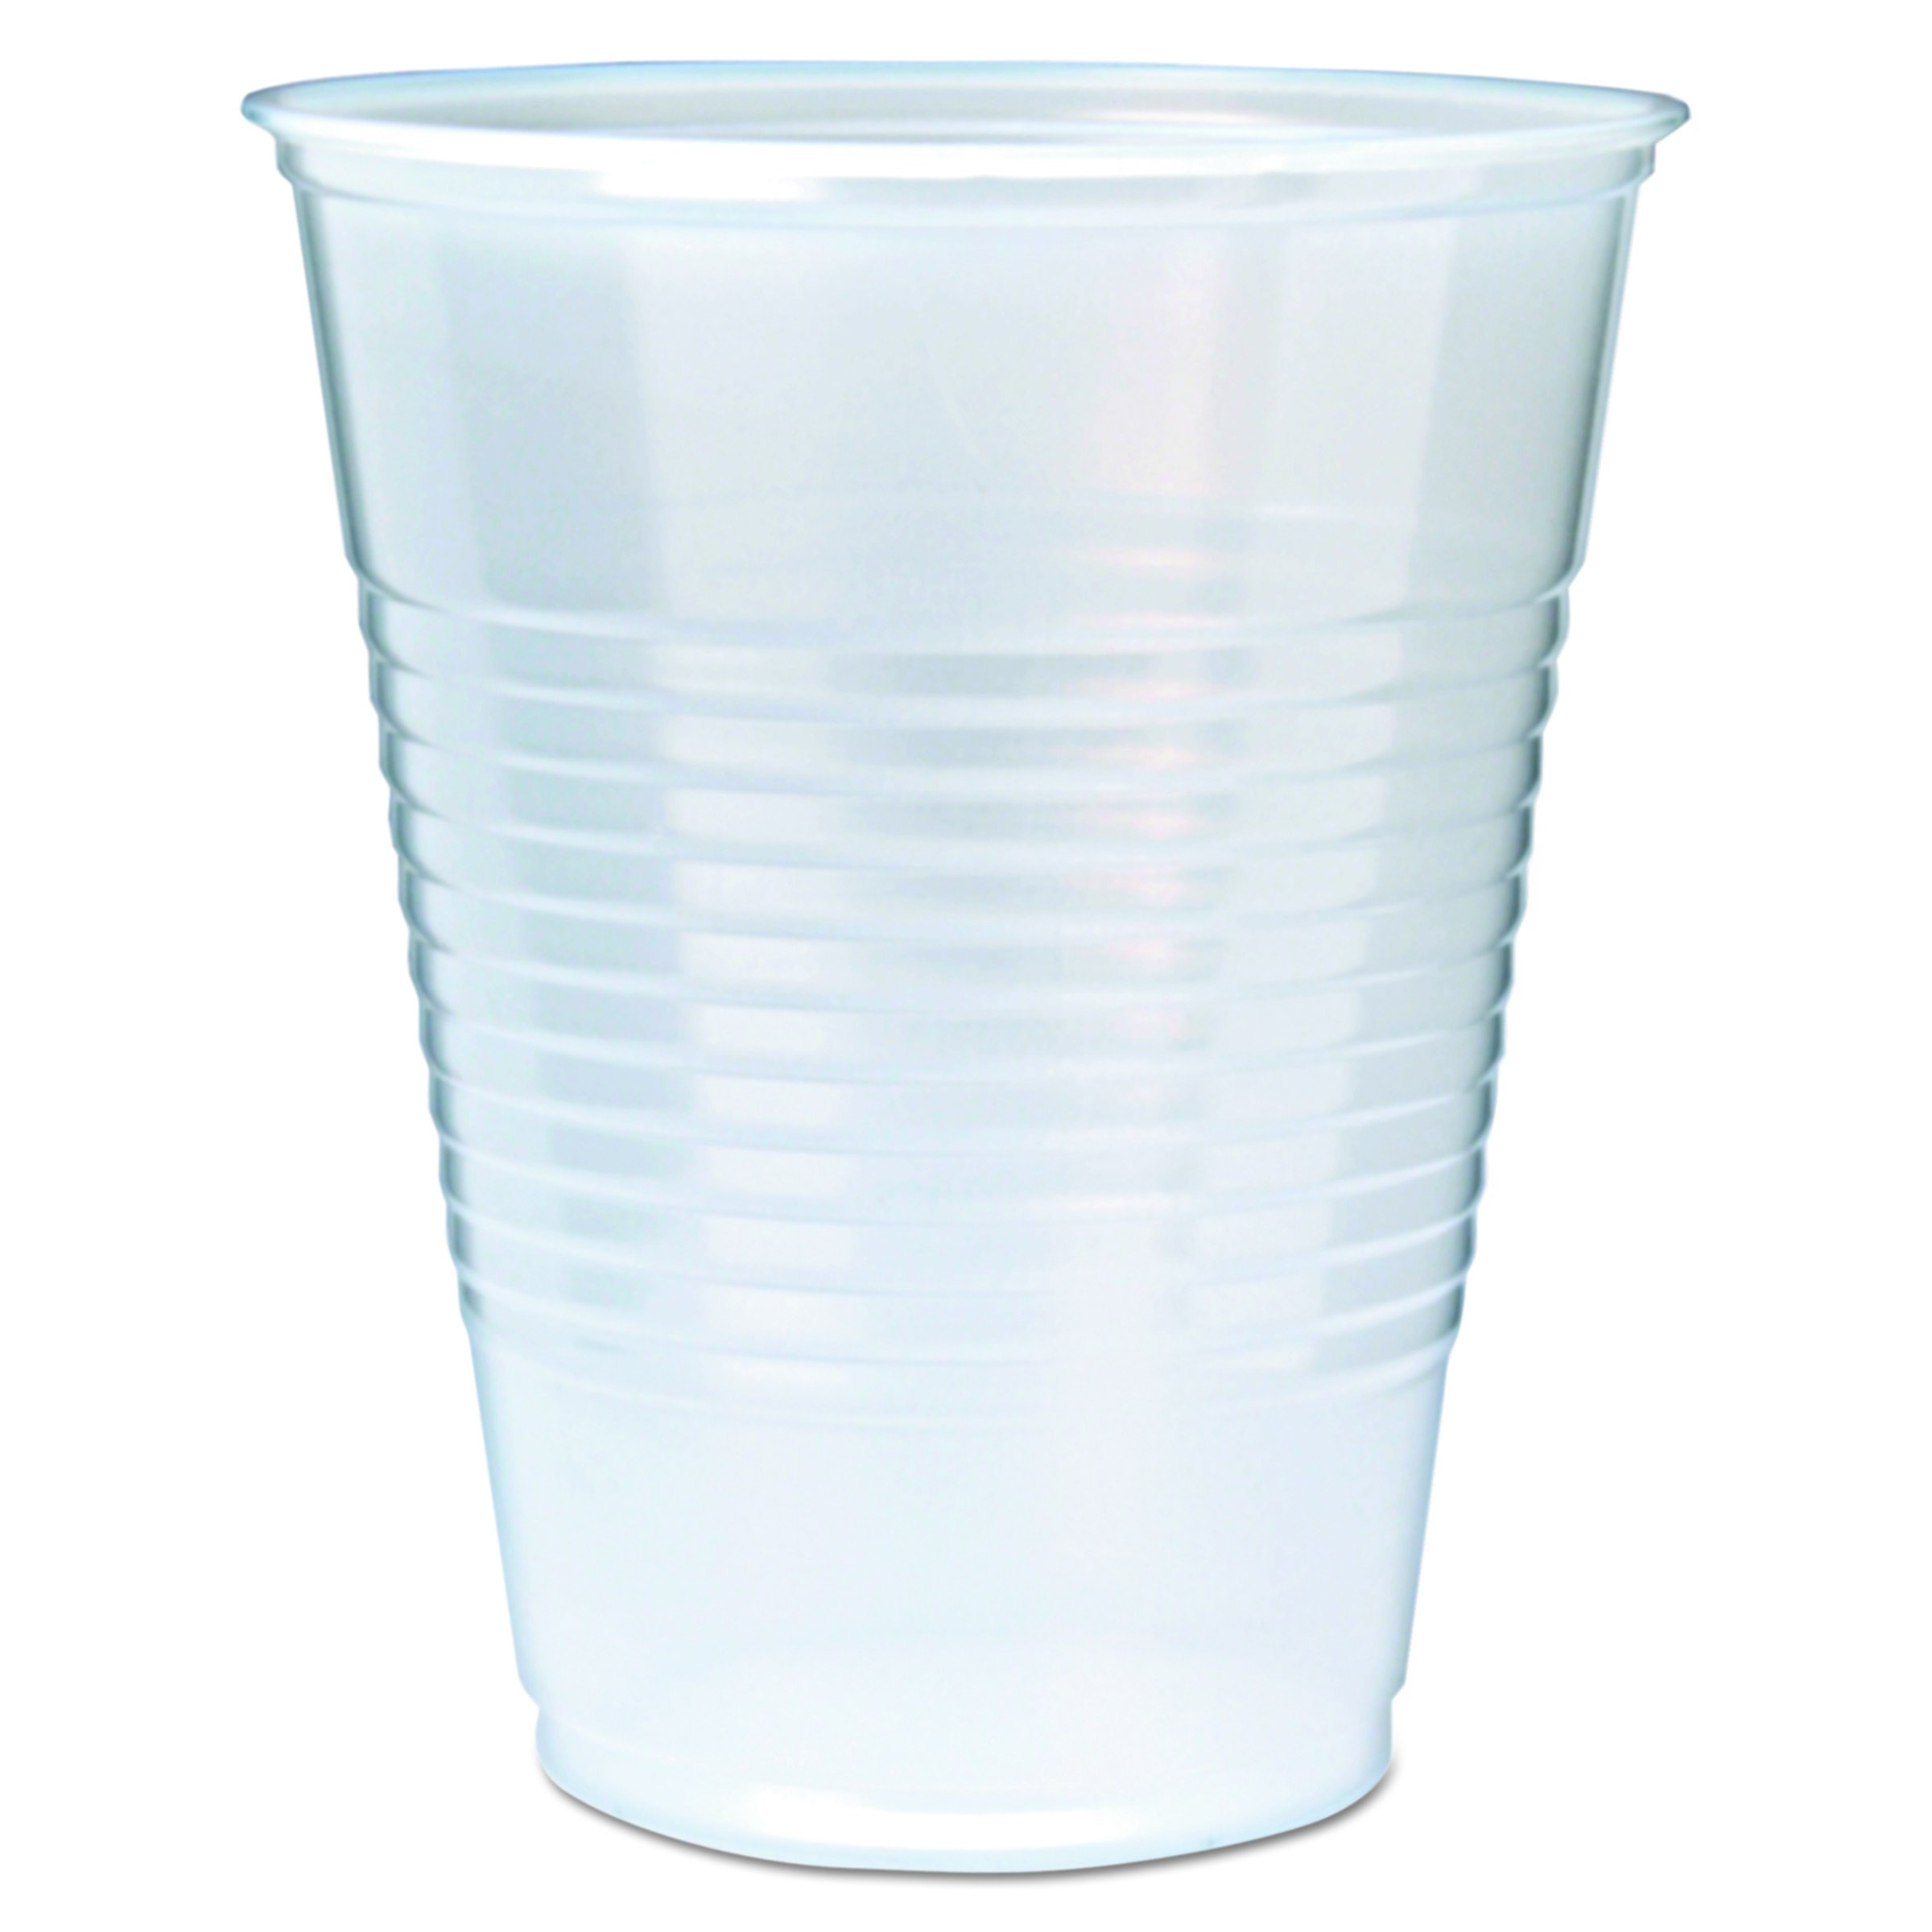 Fabri-Kal RK9 9-Ounce Capacity 3.1-Inch Top Width by 1.9-Inch Bottom Width by 3.6-Inch Height Translucent Polystyrene RK Drink Cup 100-Pack (Case of 25)